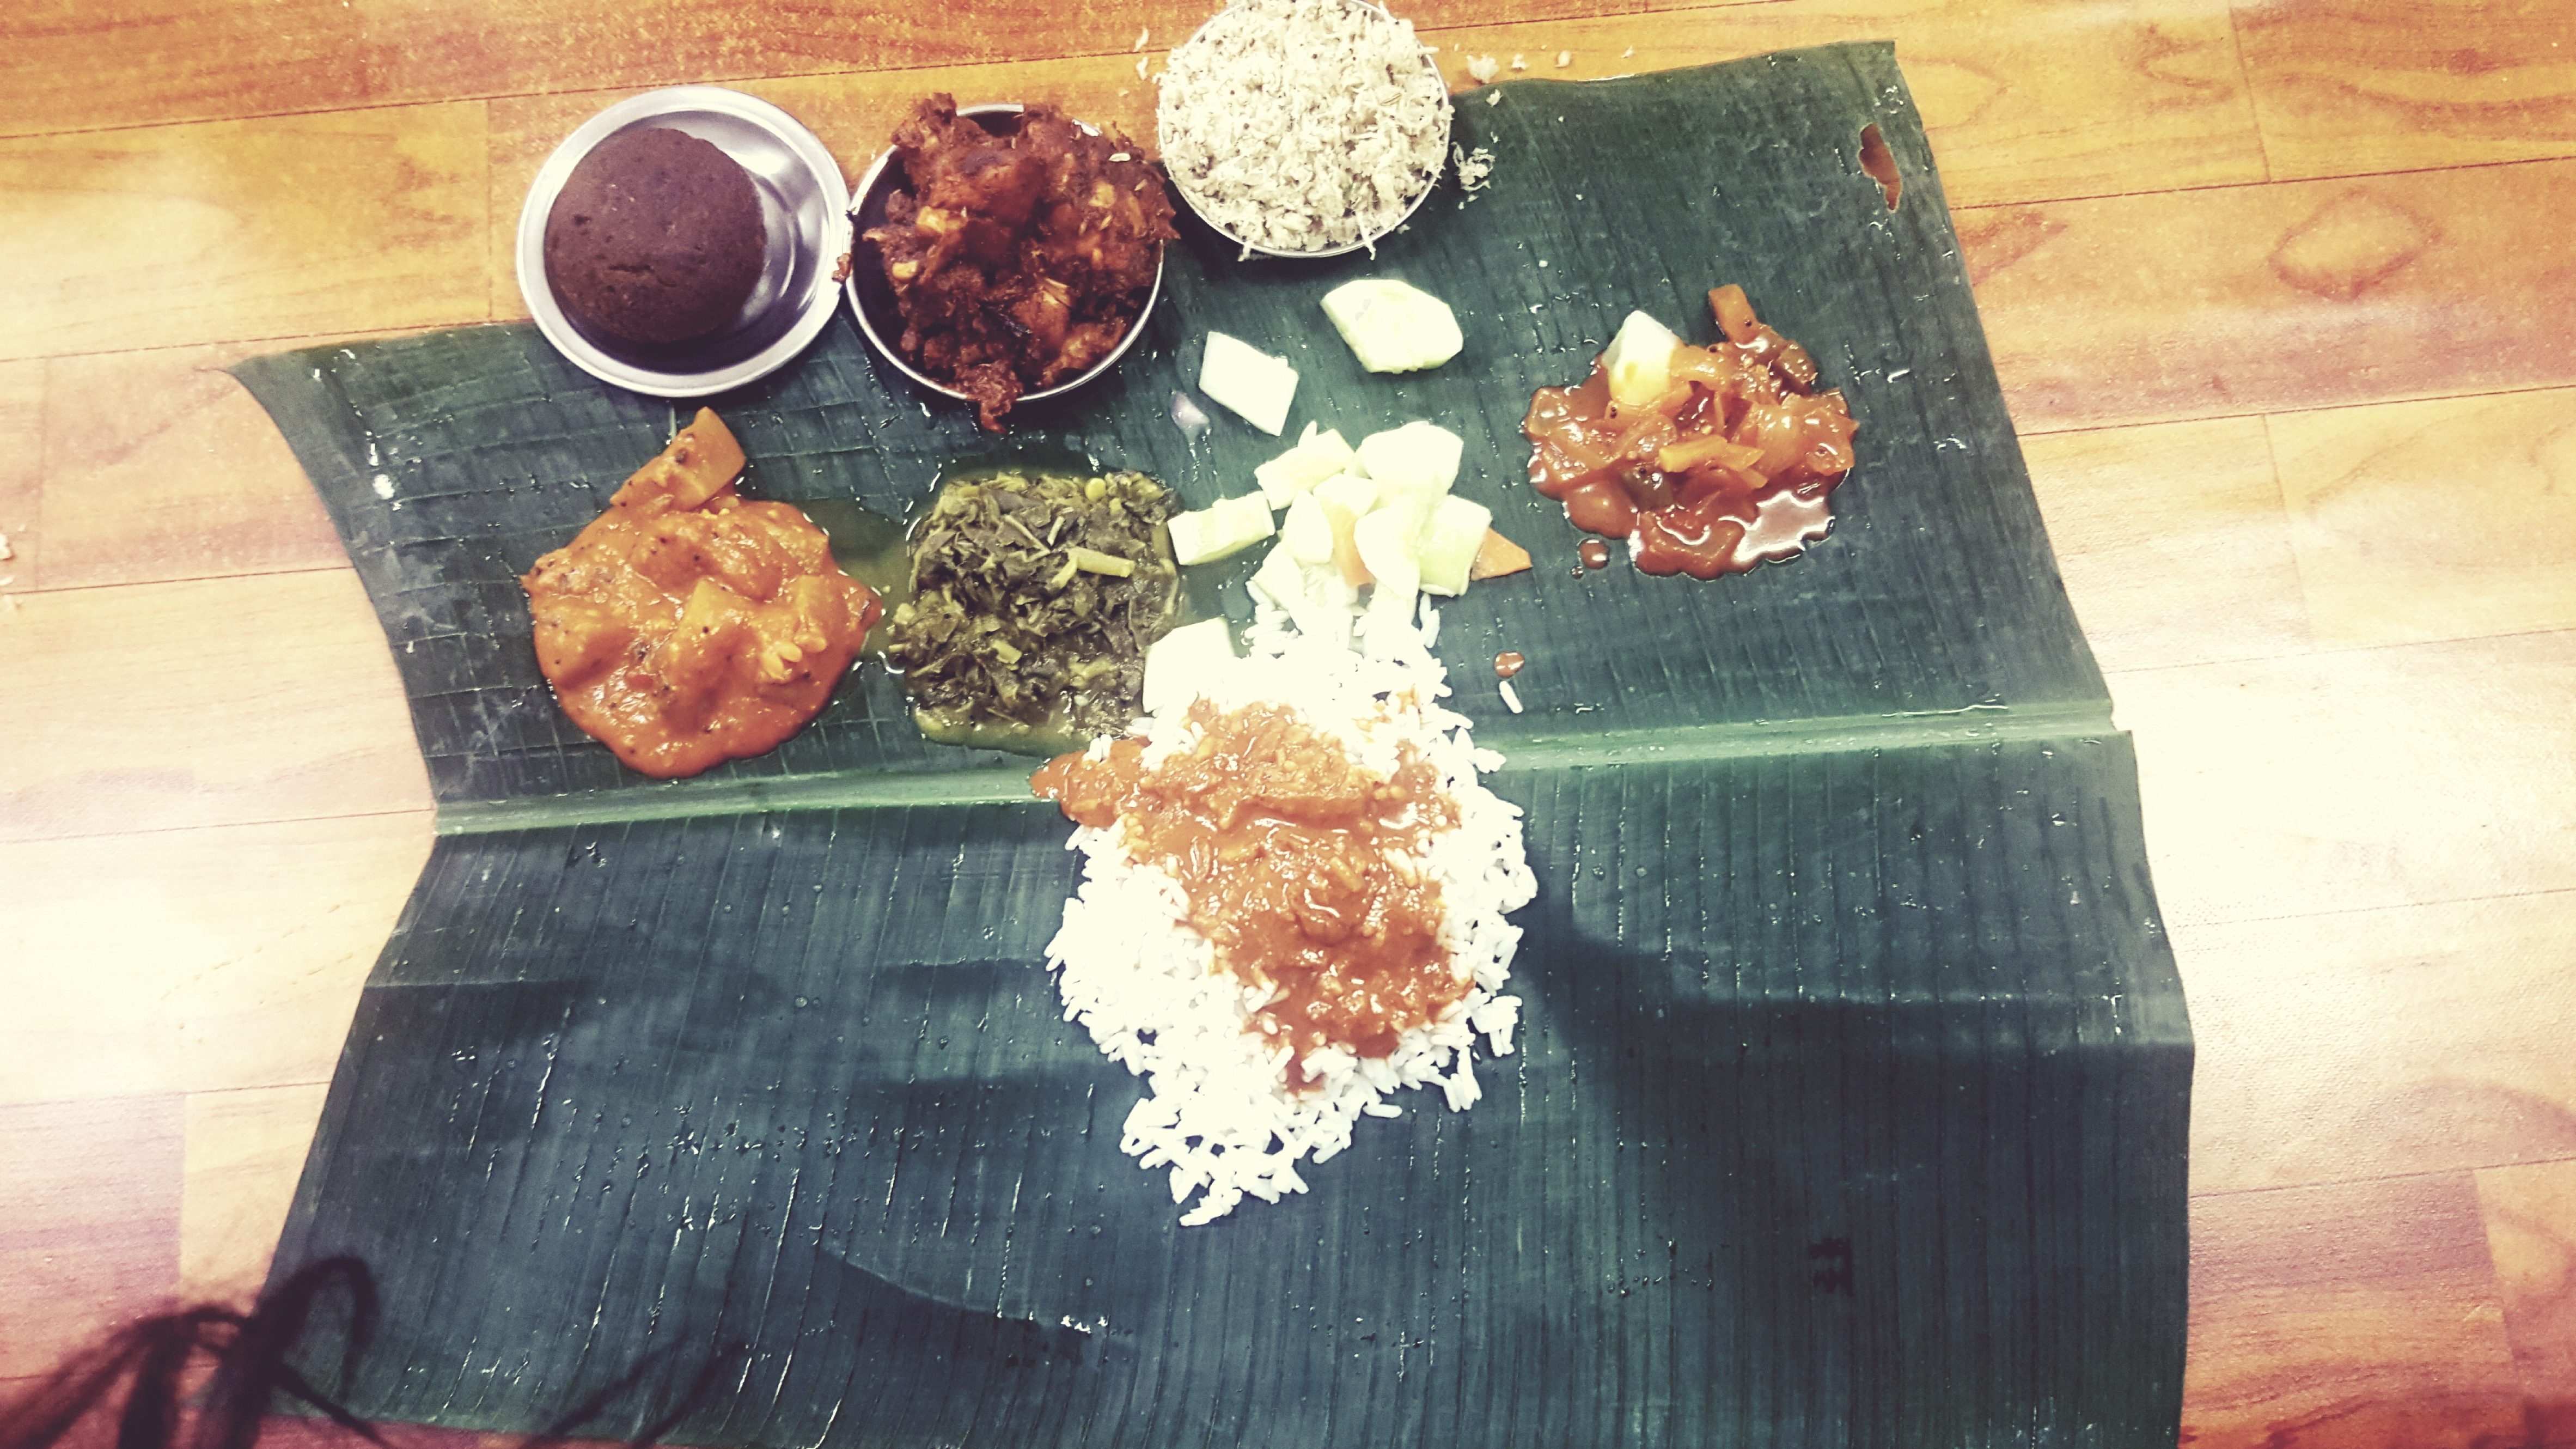 Sri Ganapathi Mess PJ Old Town – Delicious Indian food with